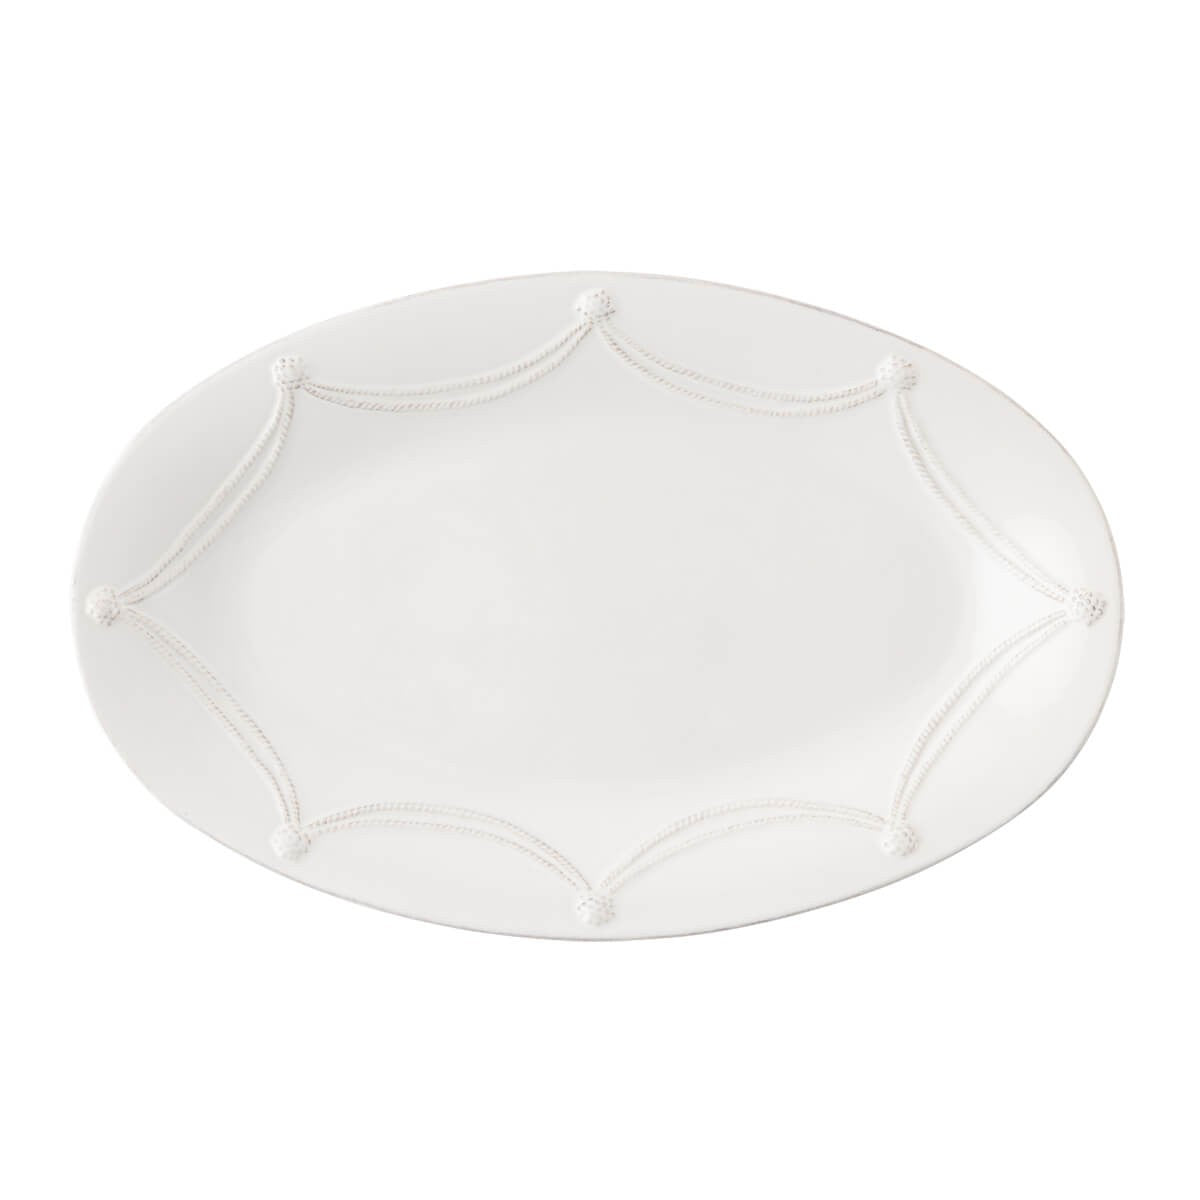 Juliska 18in Long Oval Platter